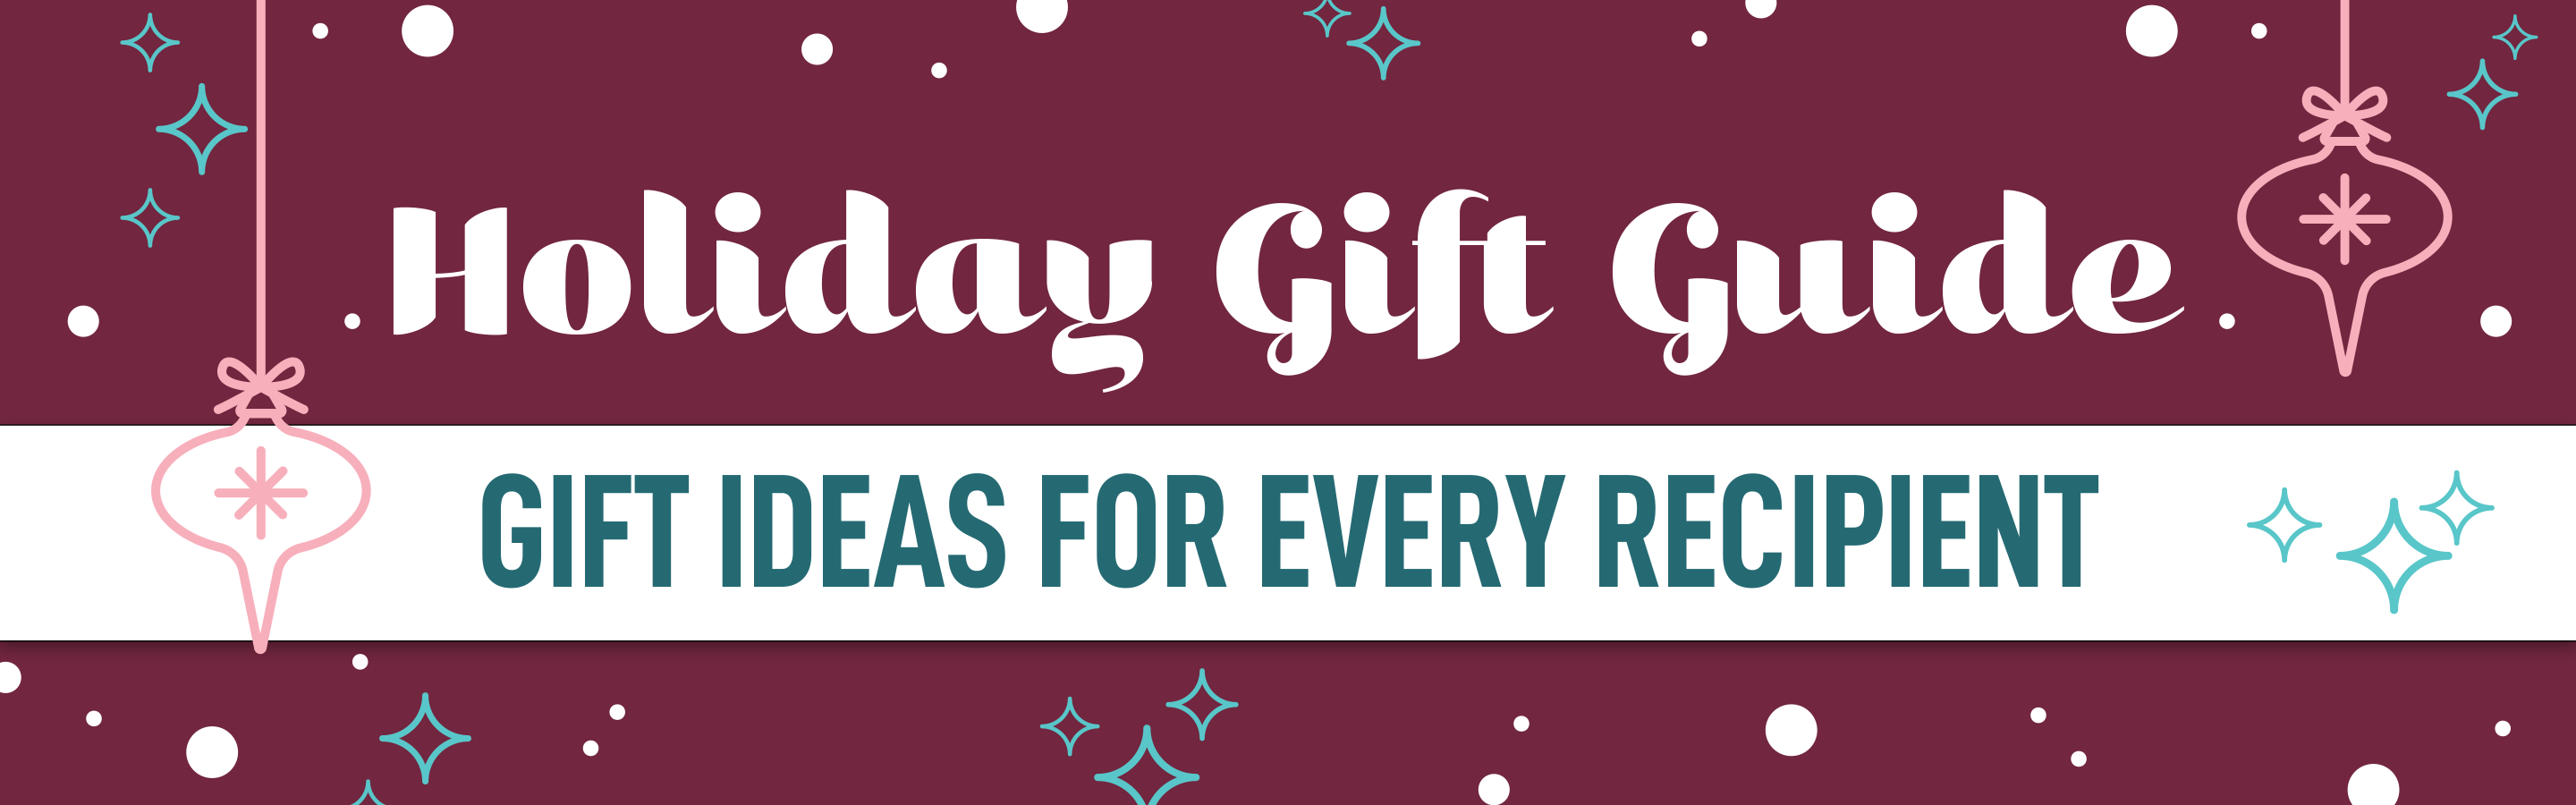 Baudville Gift Guides for every recipient